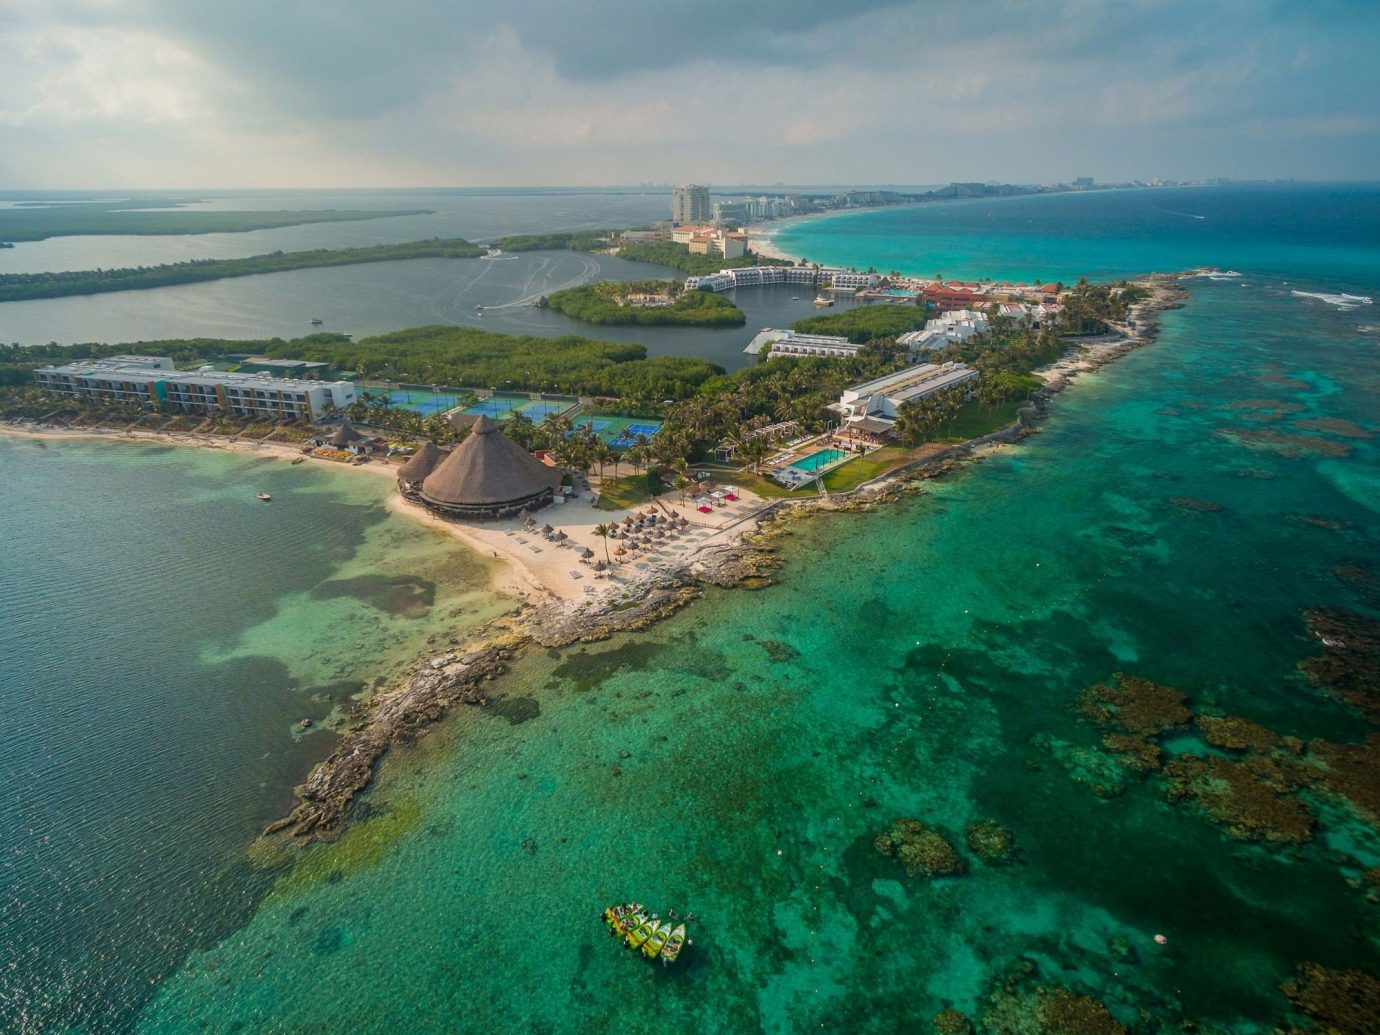 All-Inclusive Resorts Family Travel Hotels coastal and oceanic landforms Sea waterway Coast water resources promontory aerial photography Island bird's eye view islet headland cape archipelago reef peninsula bay inlet Lagoon Ocean tourism artificial island cay caribbean atoll spit